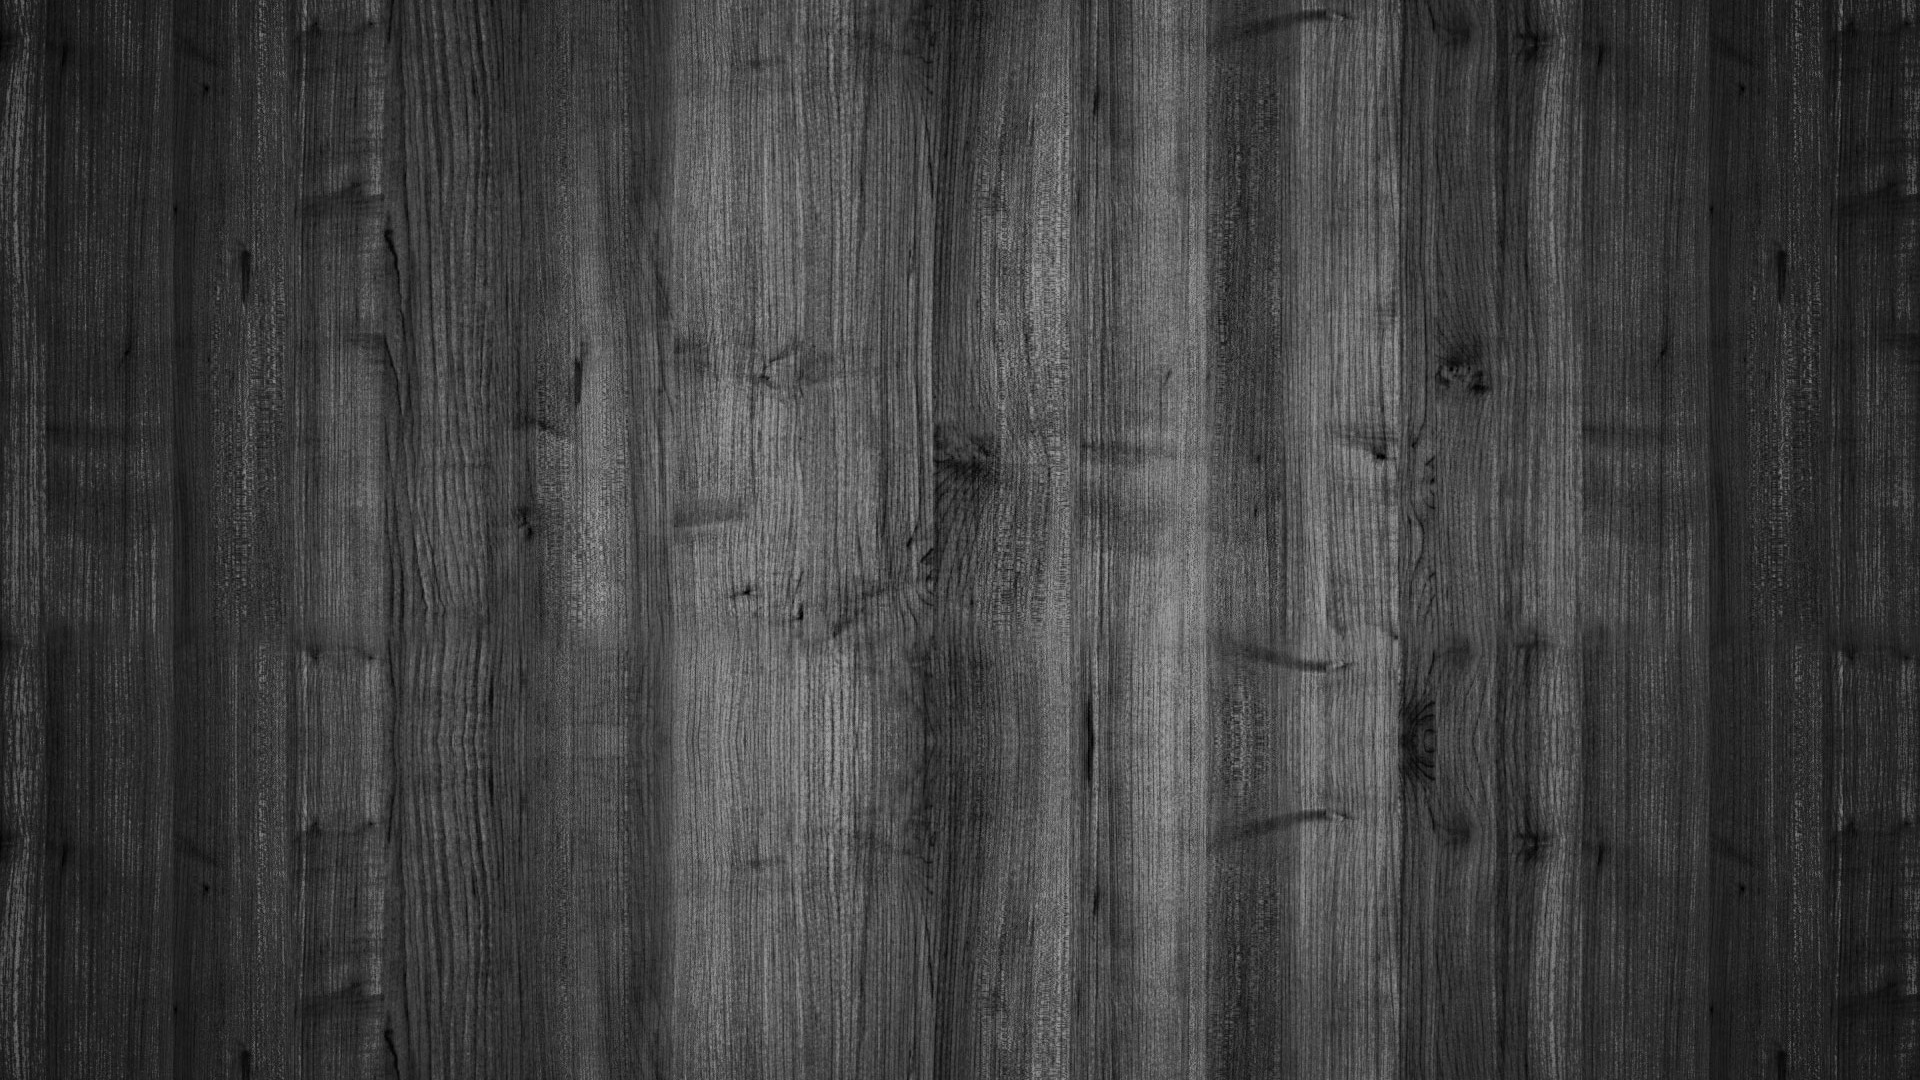 Wood Grain HD Download